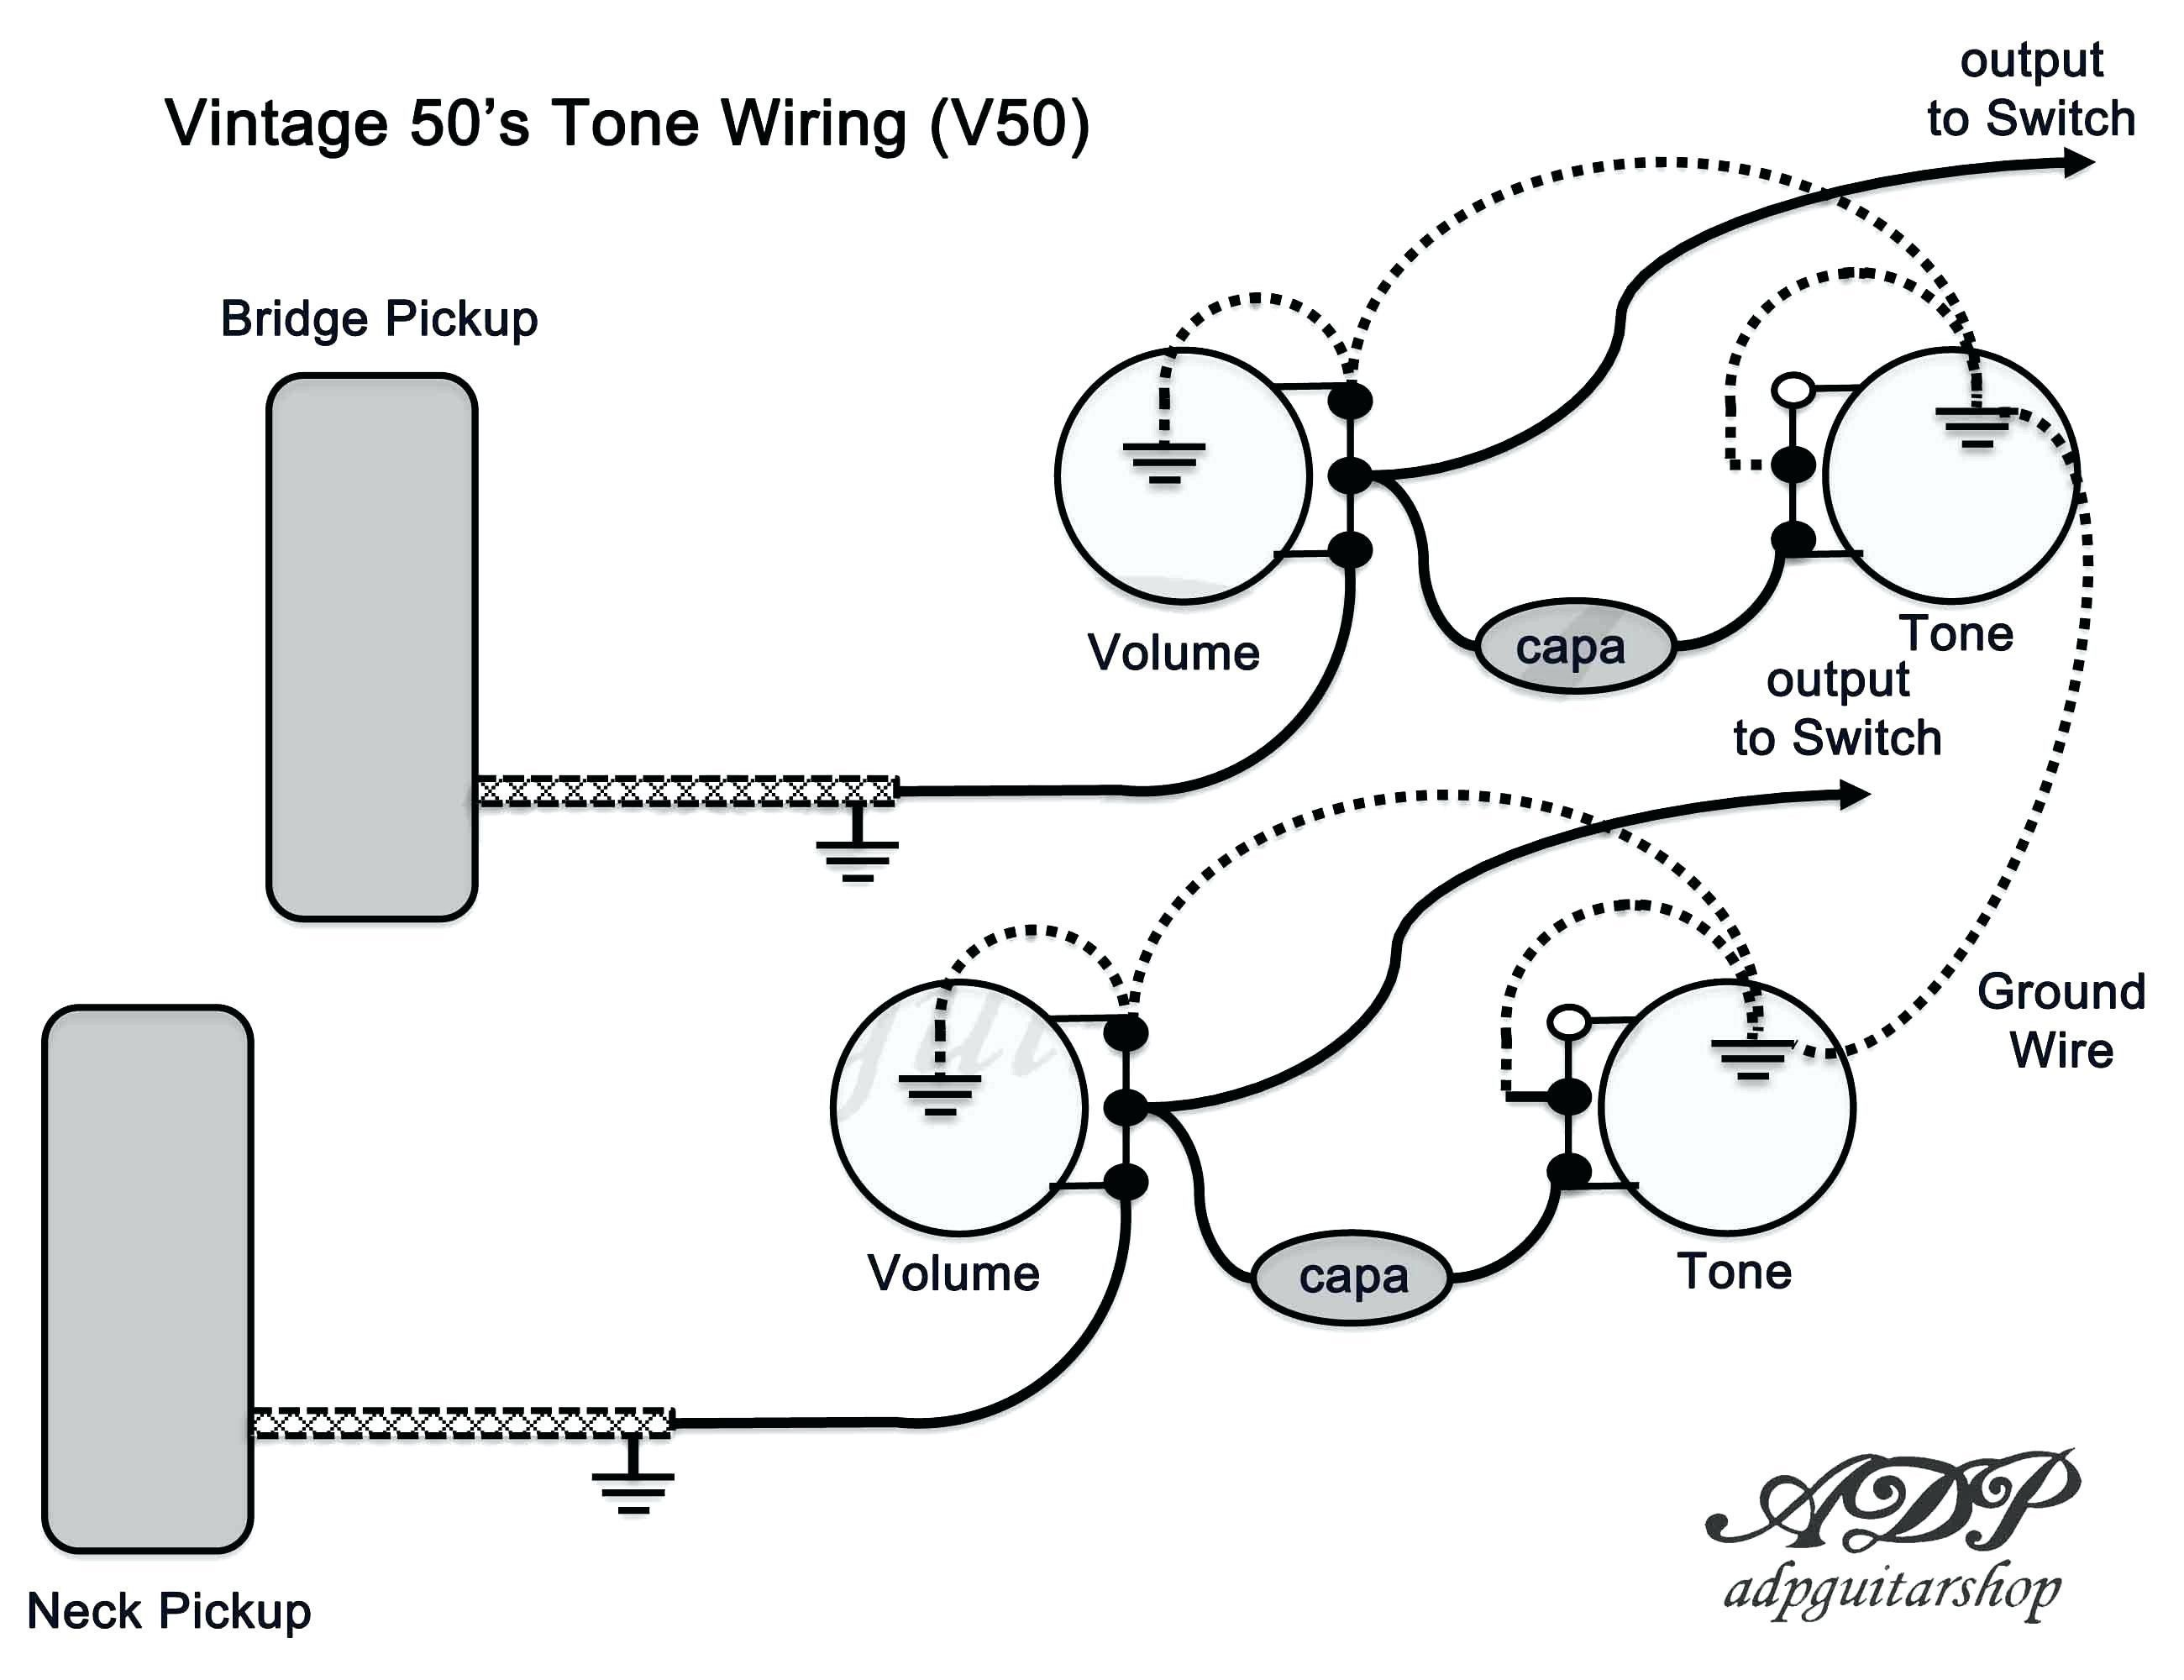 27 Automatic Wiring Diagram Book Https Bacamajalah Com 27 Automatic Wiring Diagram Book Book Dia Epiphone Les Paul Epiphone Les Paul Special Epiphone